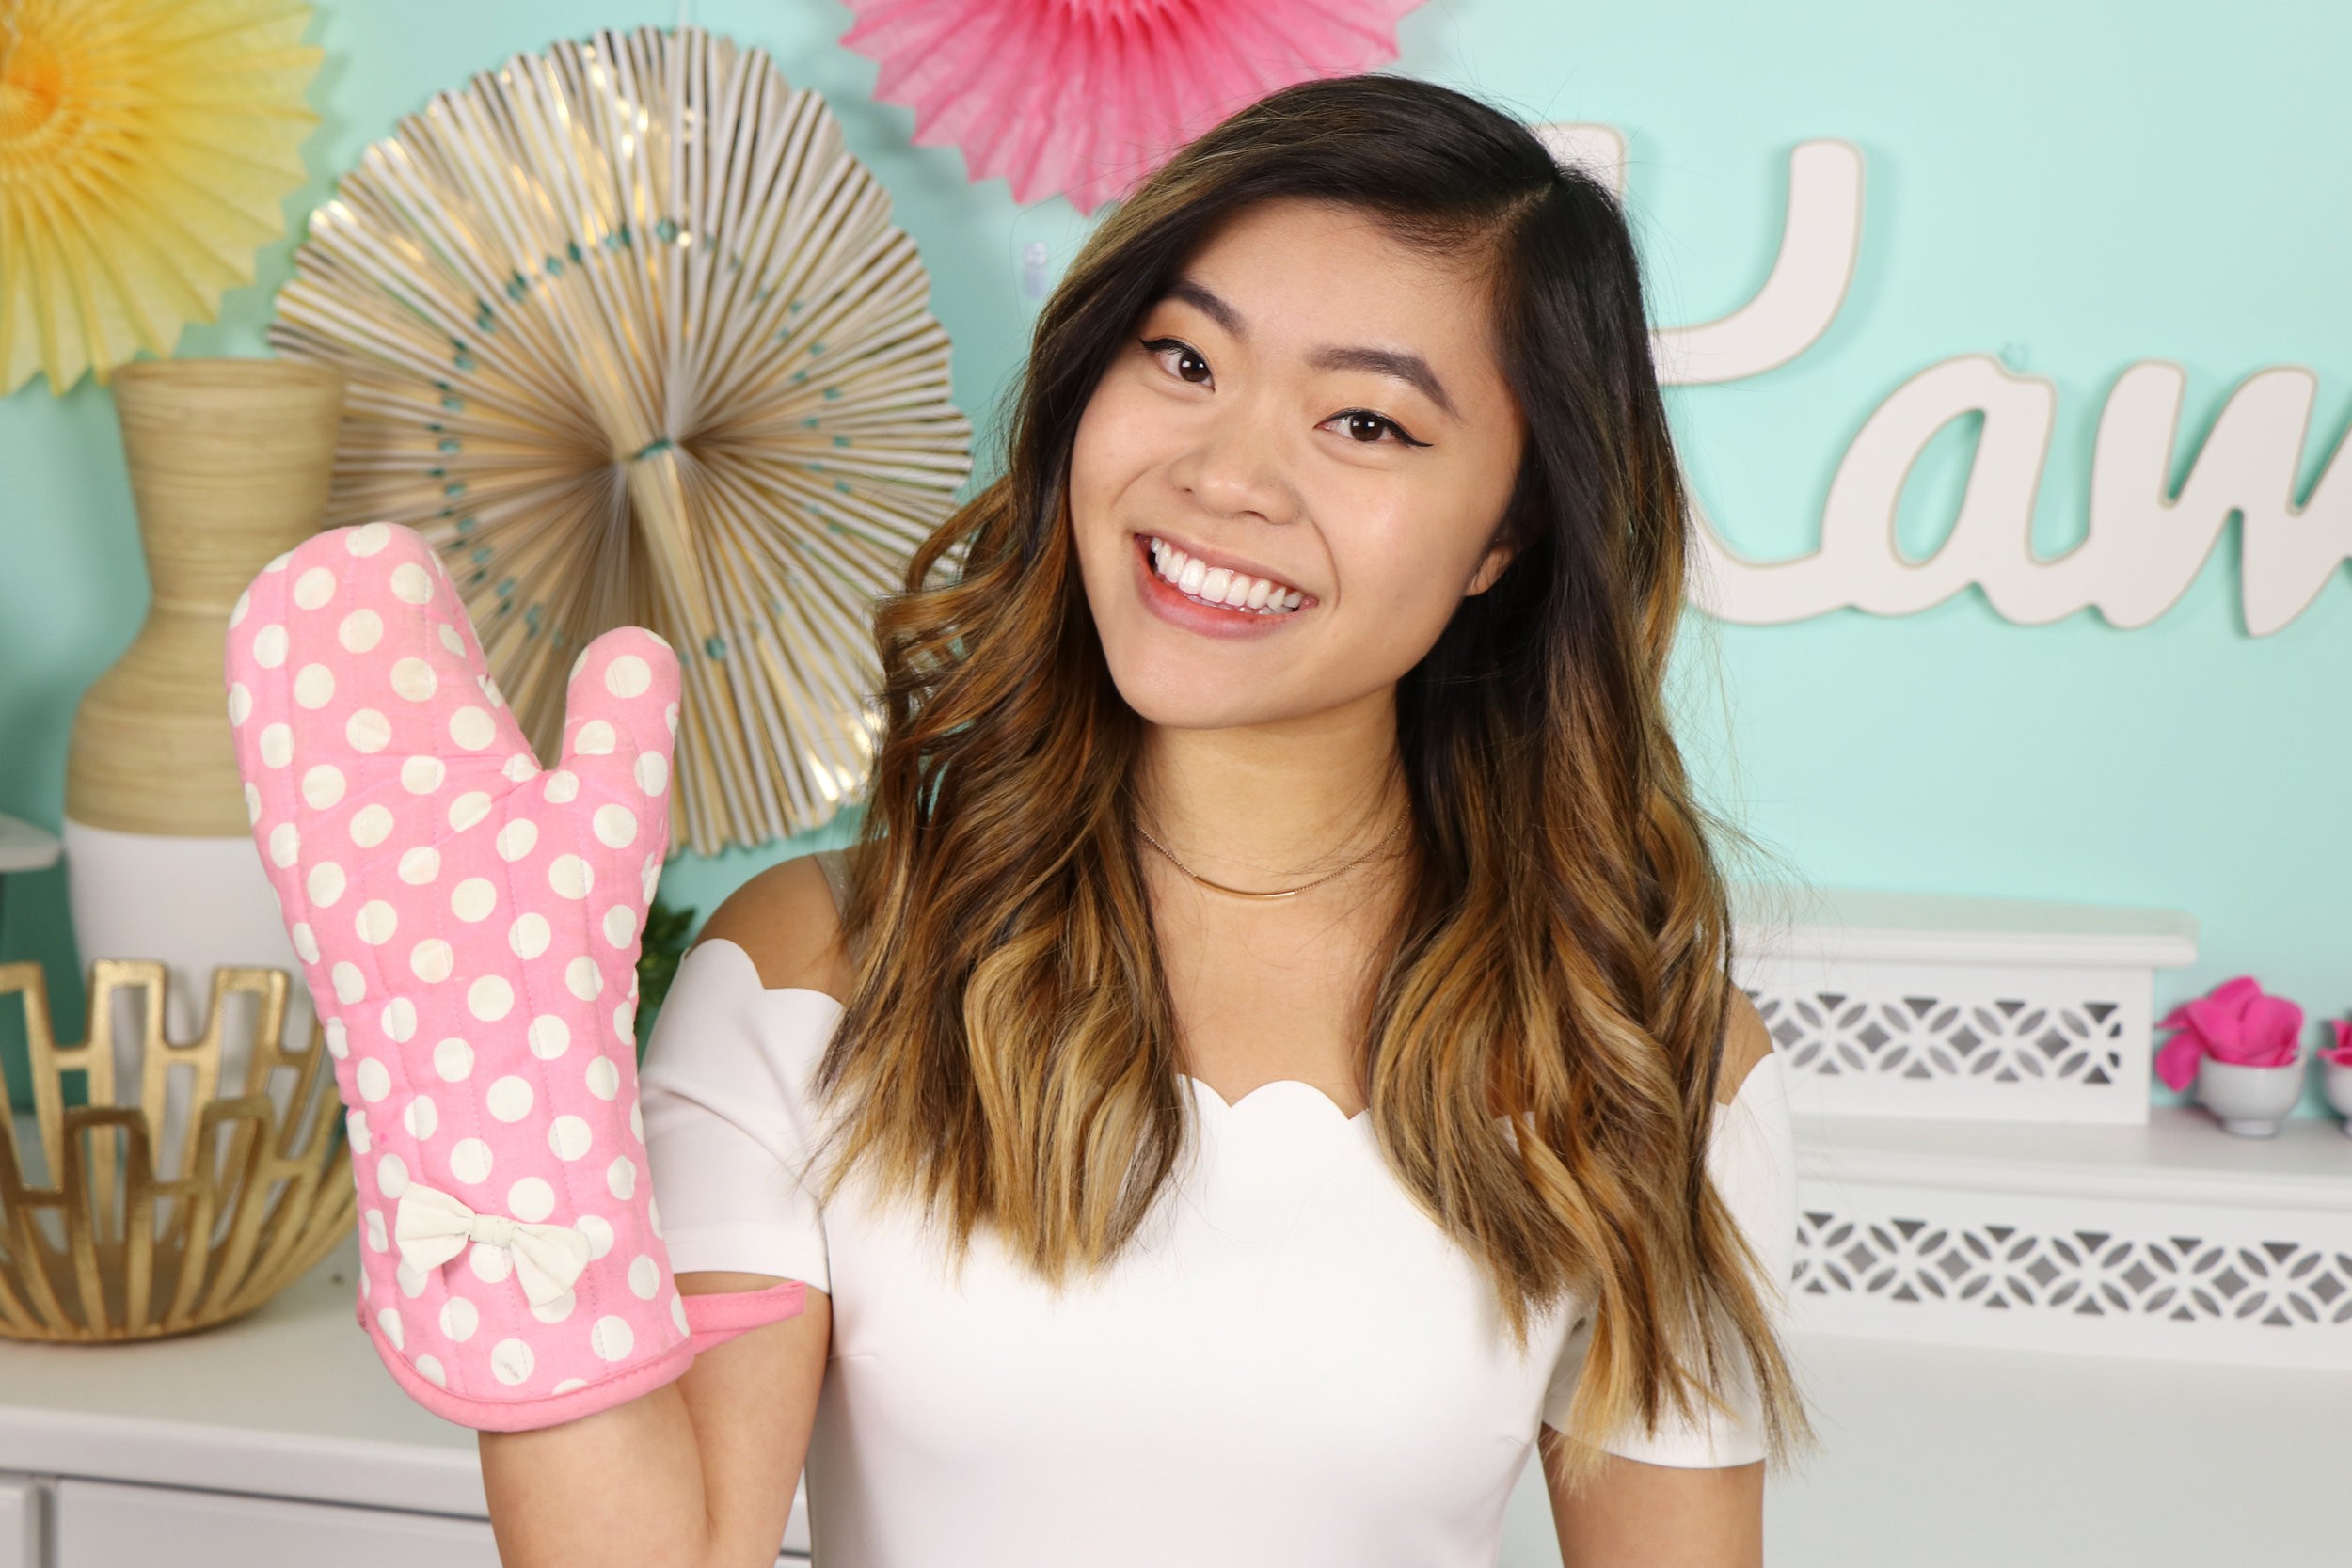 """Rachel Fong, 19 - Rachel Fong bakes all things kawaii (Japanese for """"cute"""") for her one million plus YouTube subscribers. """"I've got a massive sweet tooth and mom likes to bake, so getting in the kitchen was almost inevitable for me,"""" she tells Mochi. Known for her creative baking techniques and quirky designs, like her Totoro tarts and Japanese-style bear pancakes, she was drawn to the kawaii aesthetic after a trip to San Francisco's Japantown when she was 14. In addition to baking, Fong also serves as the first ambassador for #BakeAChange, a nonprofit that funds scholarships for girls in low-income countries who will be the first in their families to graduate high school. — C.N.Image Courtesy of Rachel Fong"""